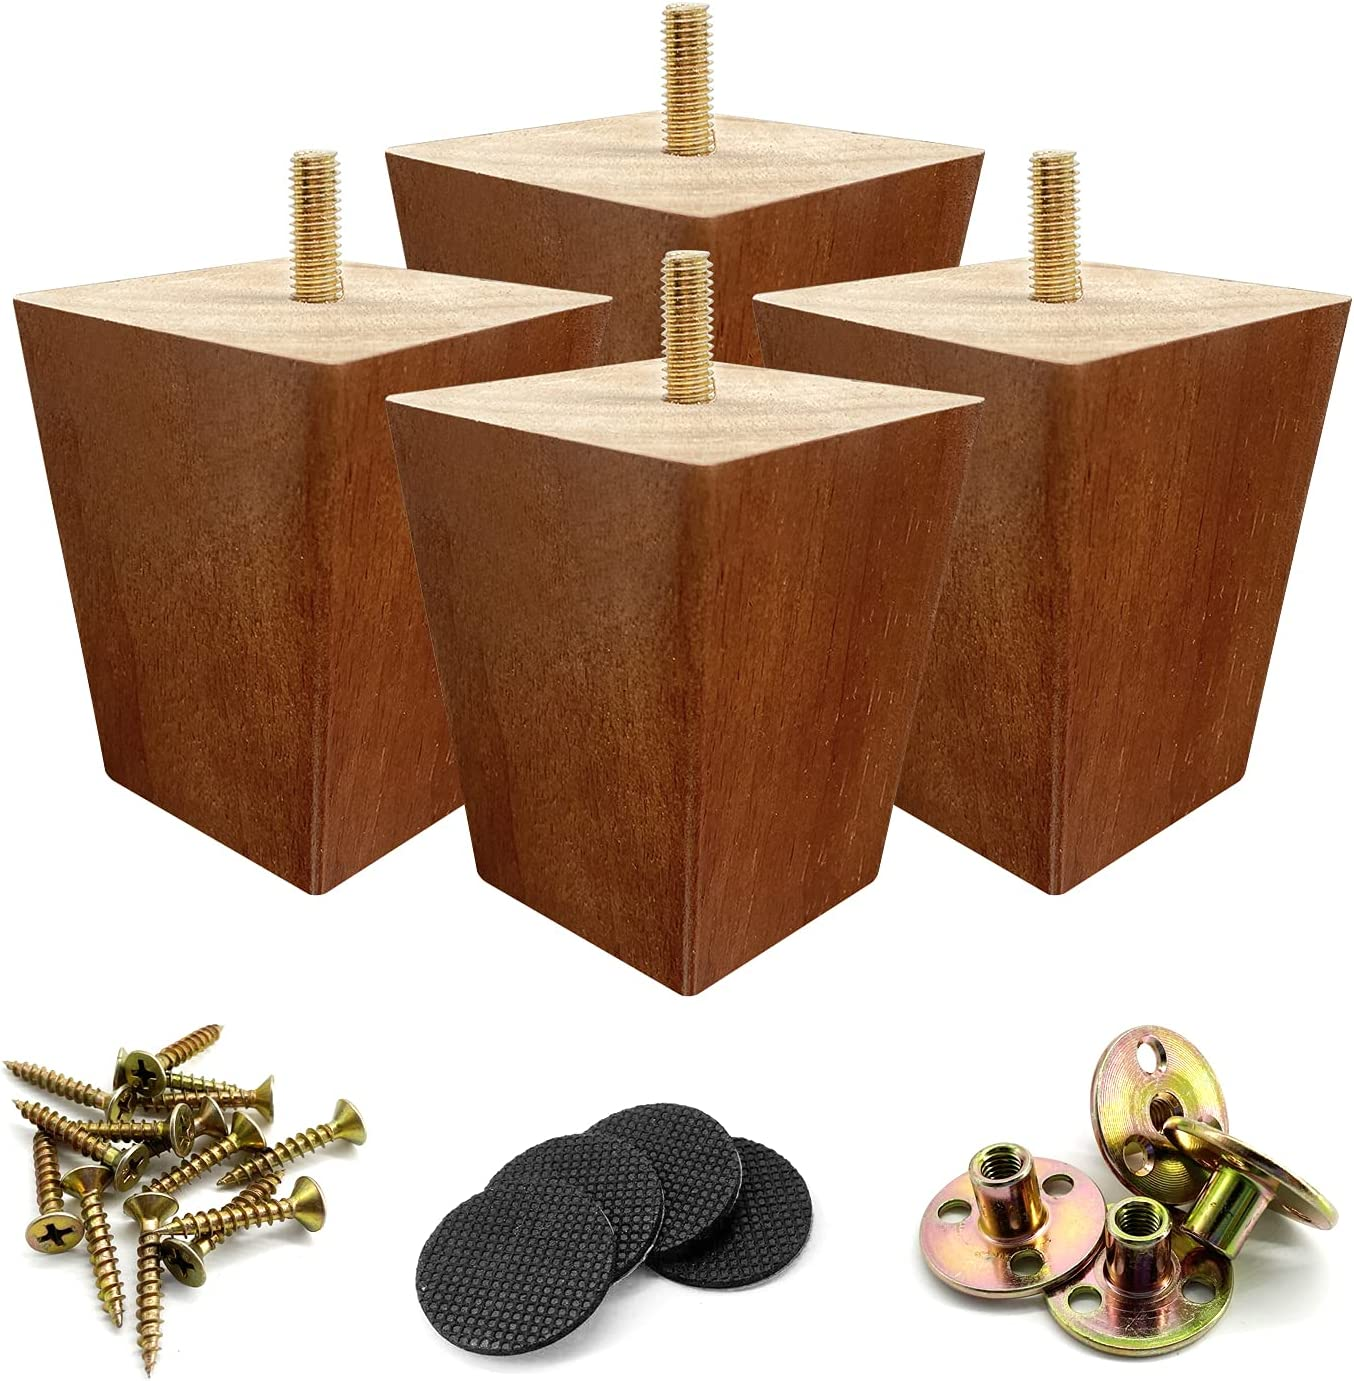 Kculehtlla Wood Furniture Legs 3 inch - Wooden Made Tapered Replacement Furniture Leg for Ottoman Accent Chair Dresser Pack of 4